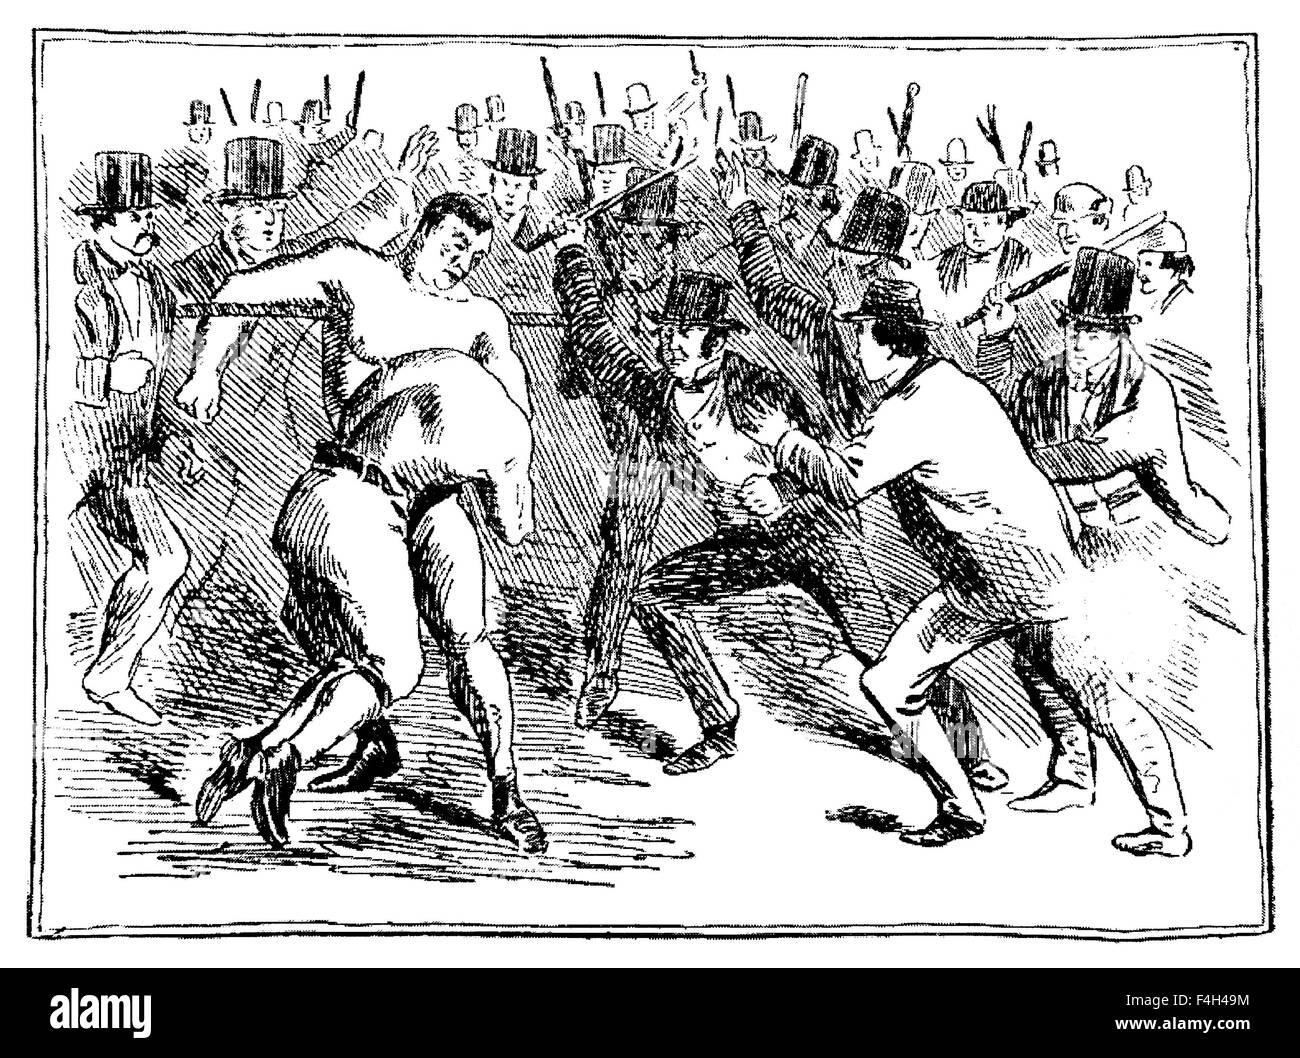 Vintage newspaper illustration depicting the famous 1860 bare-knuckle fight between Tom Sayers (1826 - 1865), Champion - Stock Image